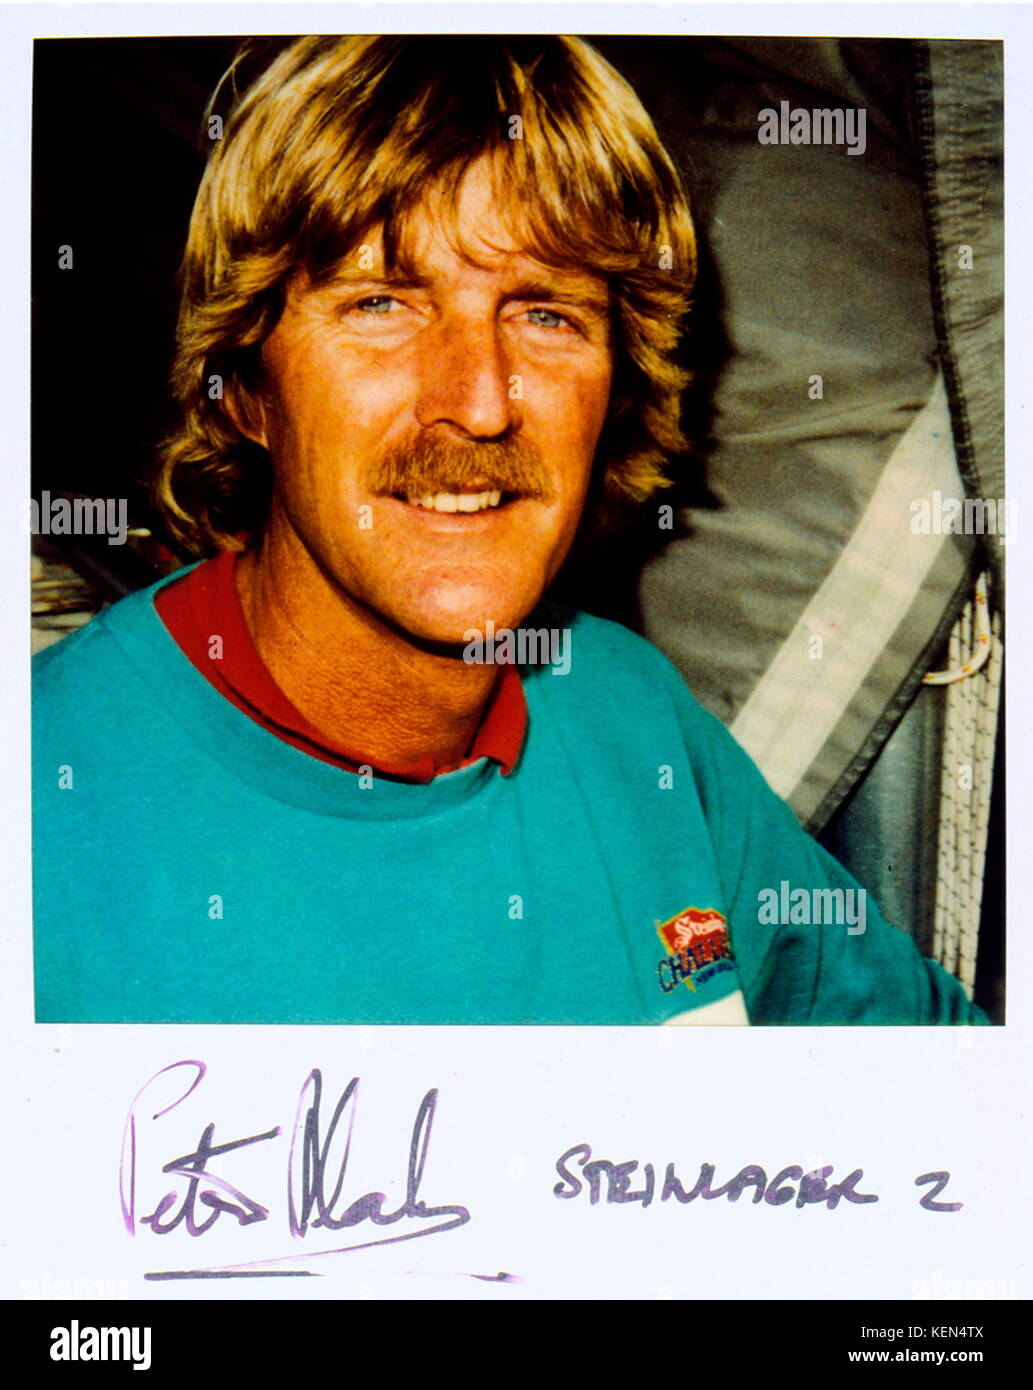 AJAXNETPHOTO. 1989. SOUTHAMPTON, ENGLAND. - POLAROID FILE PHOTO; PLEASE DO NOT CROP. - NEW ZEALAND YACHTSMAN SIR - Stock Image